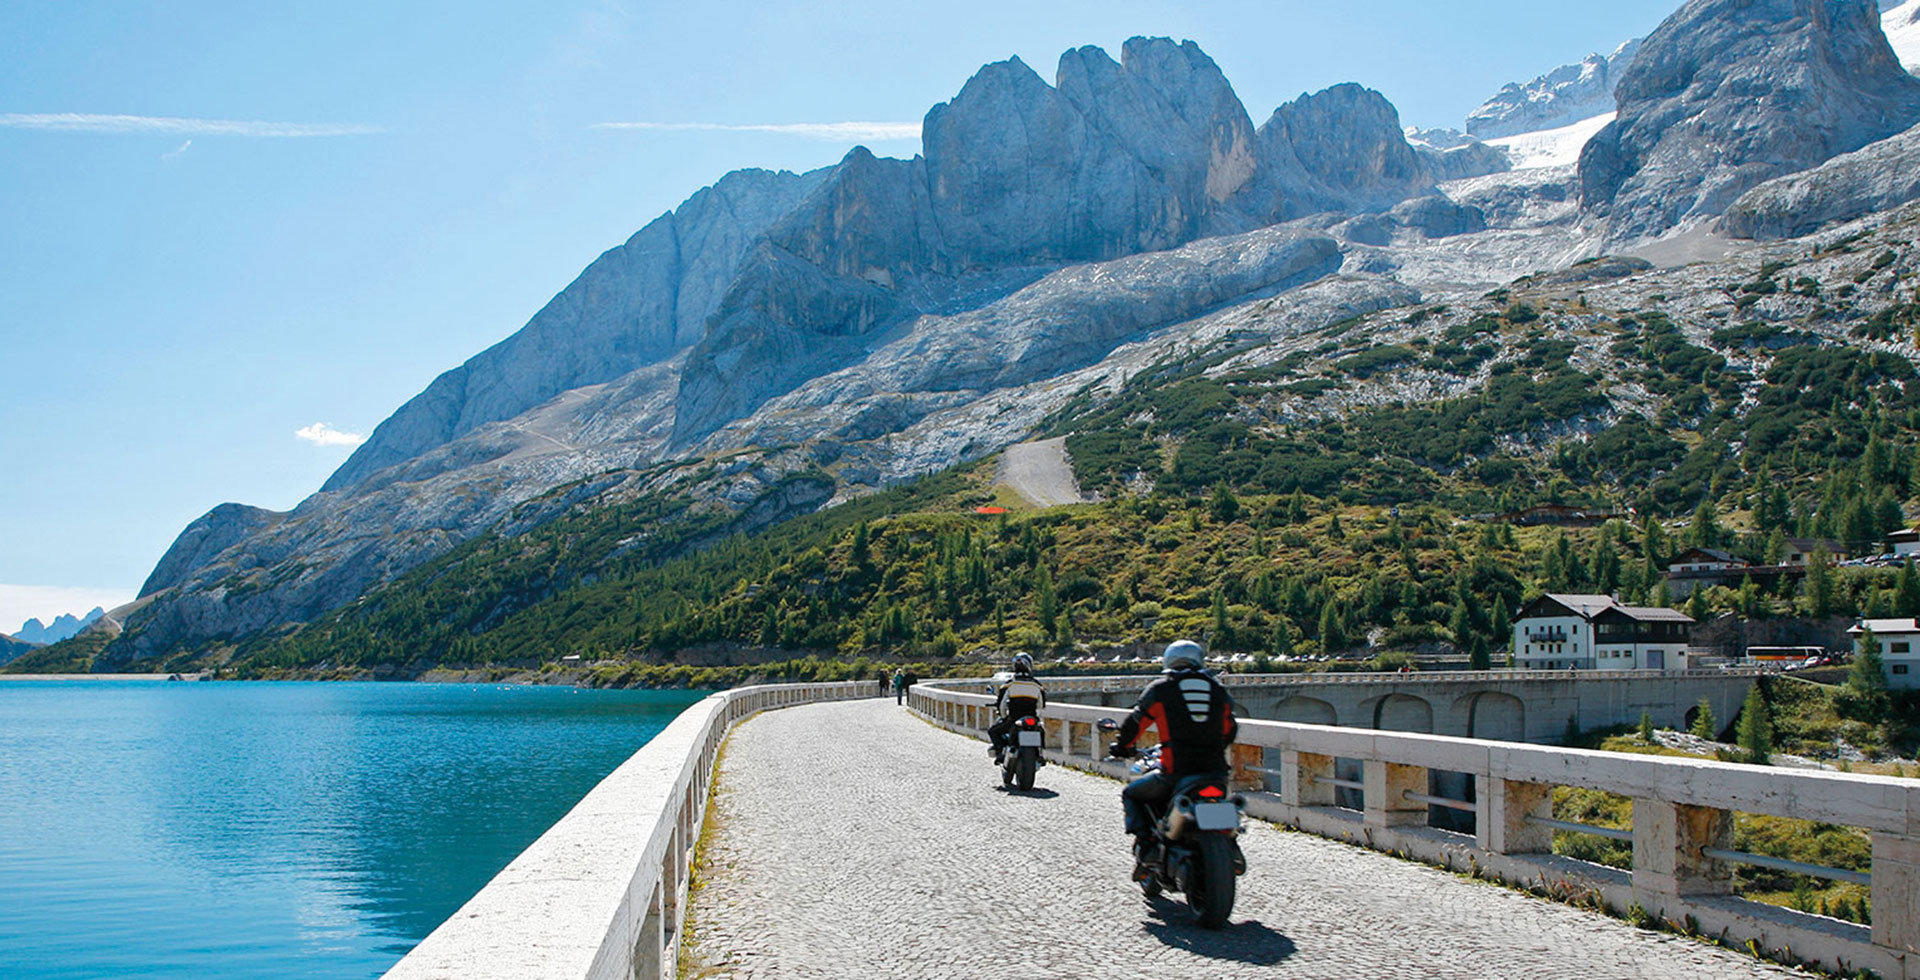 Bikers on Tour Dolomite passes